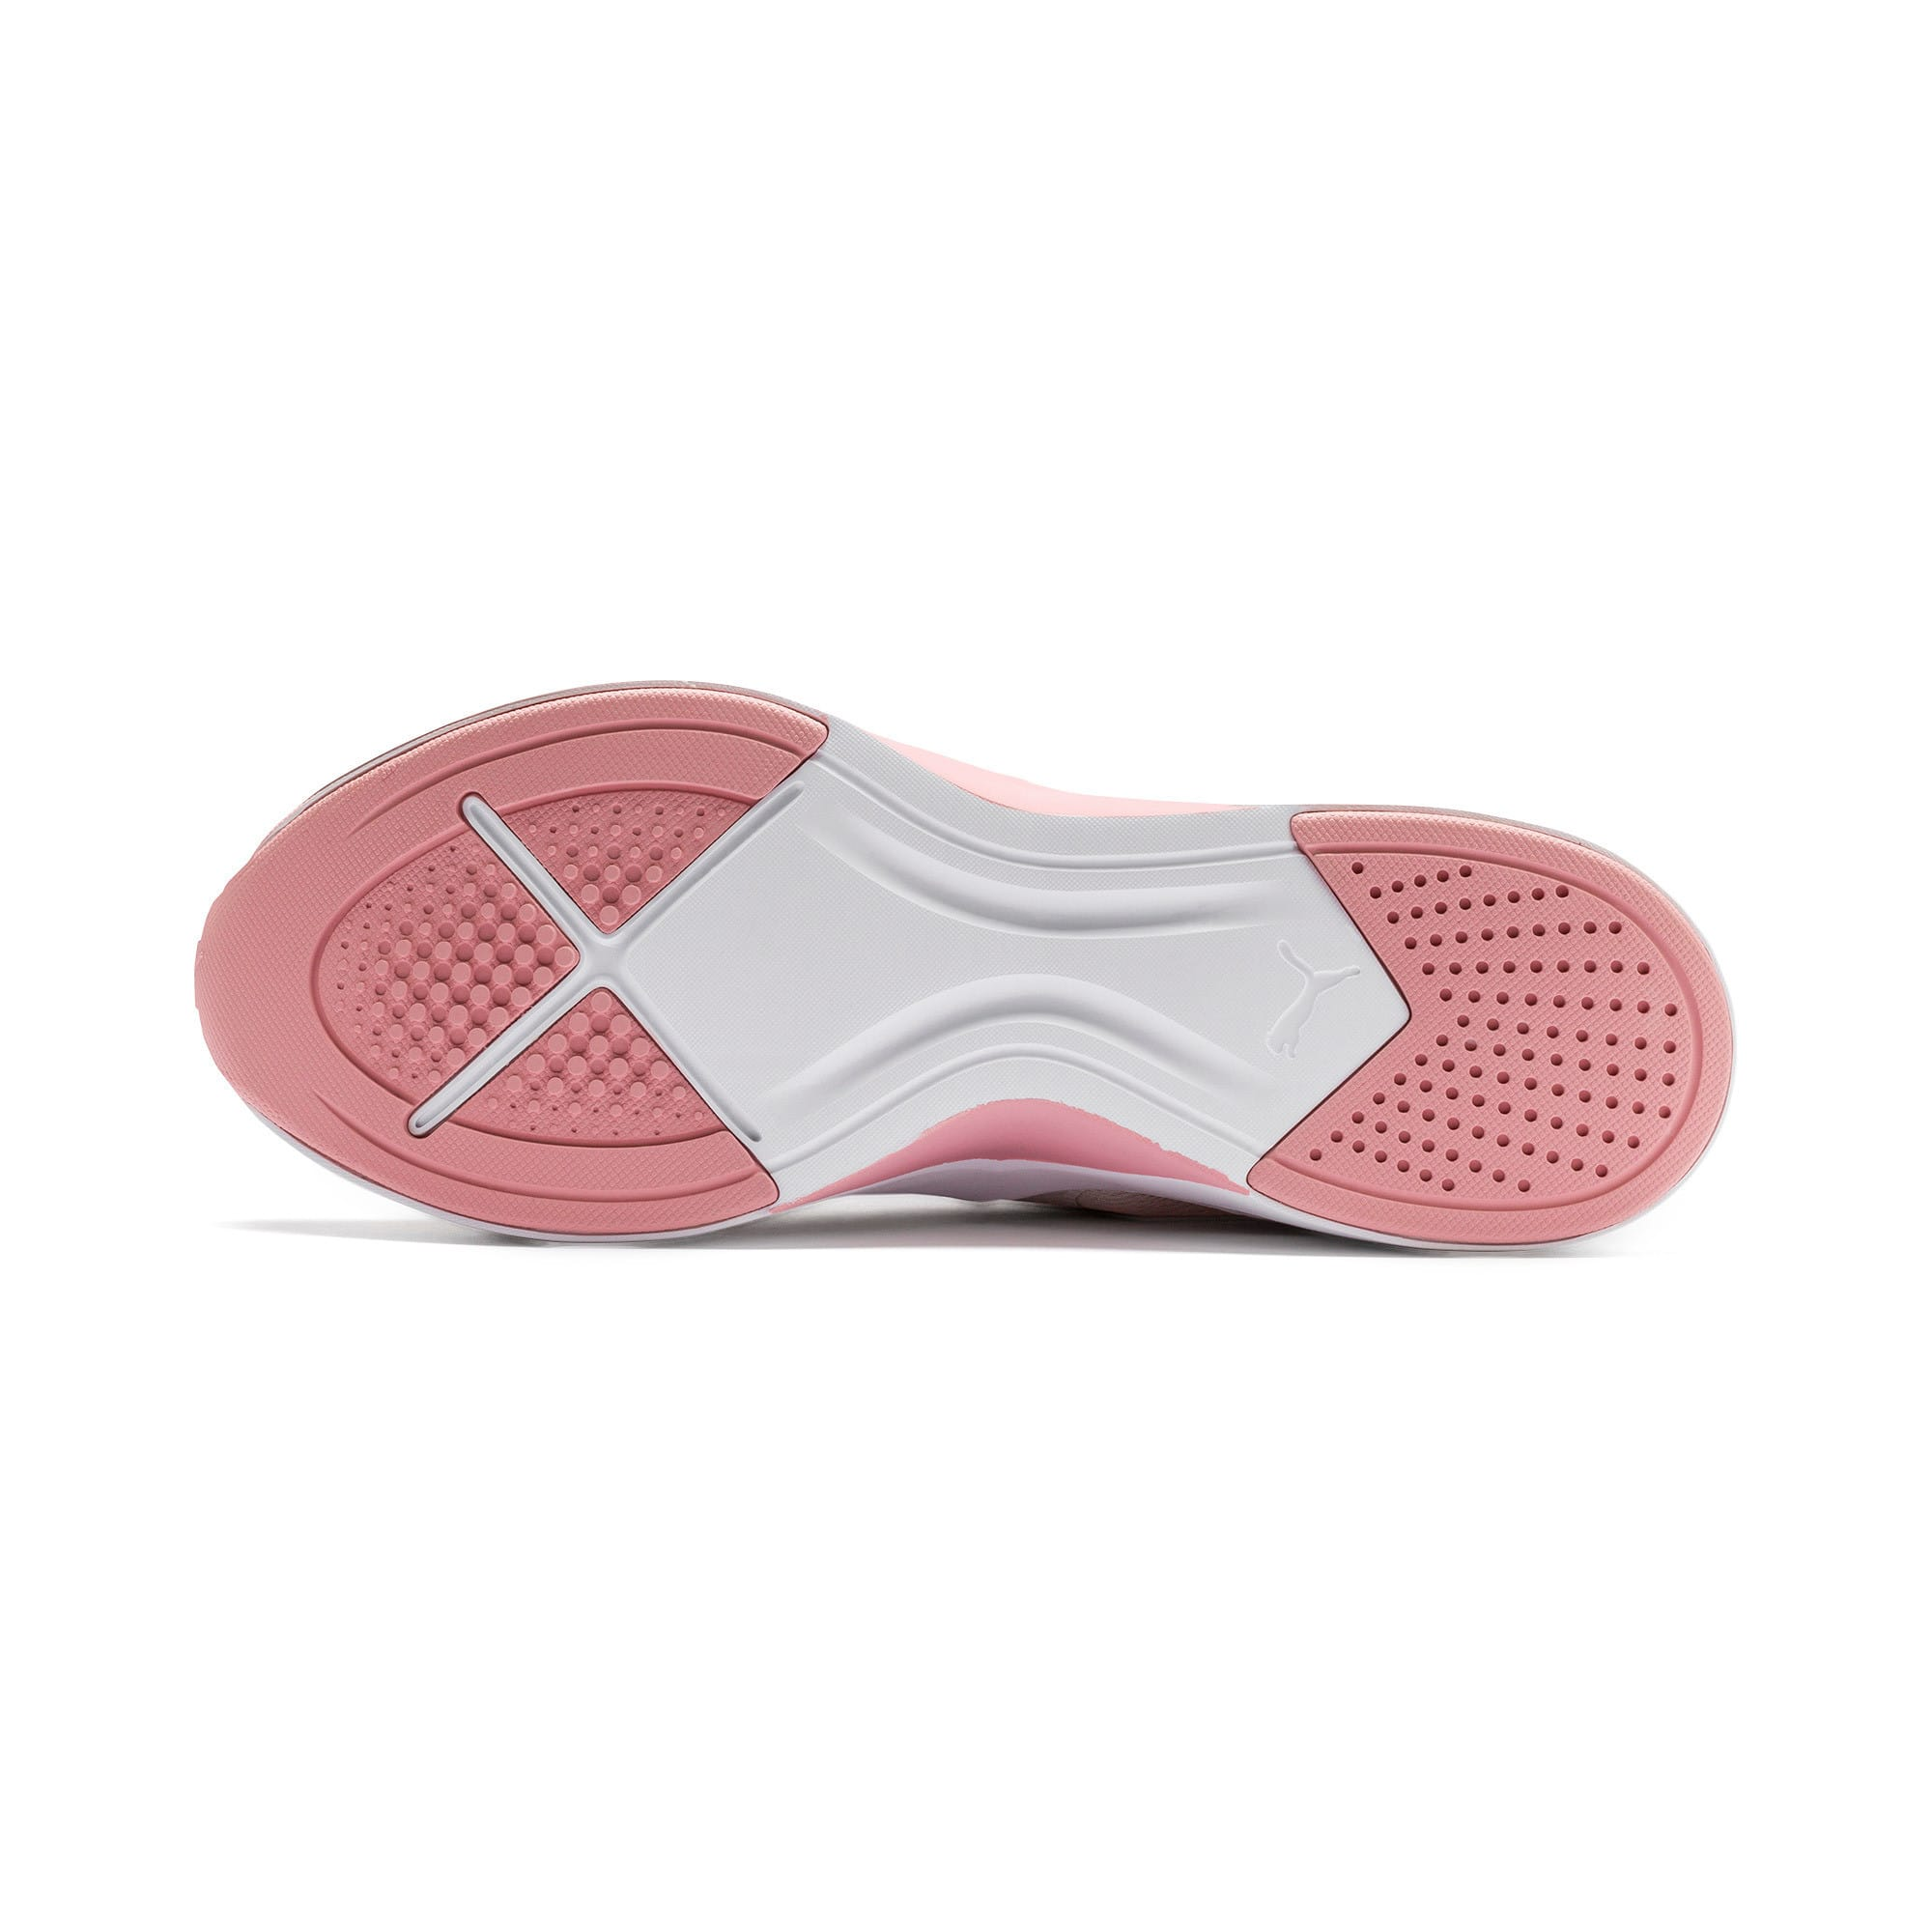 Thumbnail 6 of Incite FS Shift Women's Trainers, Pastel Parchment-Rose-White, medium-IND